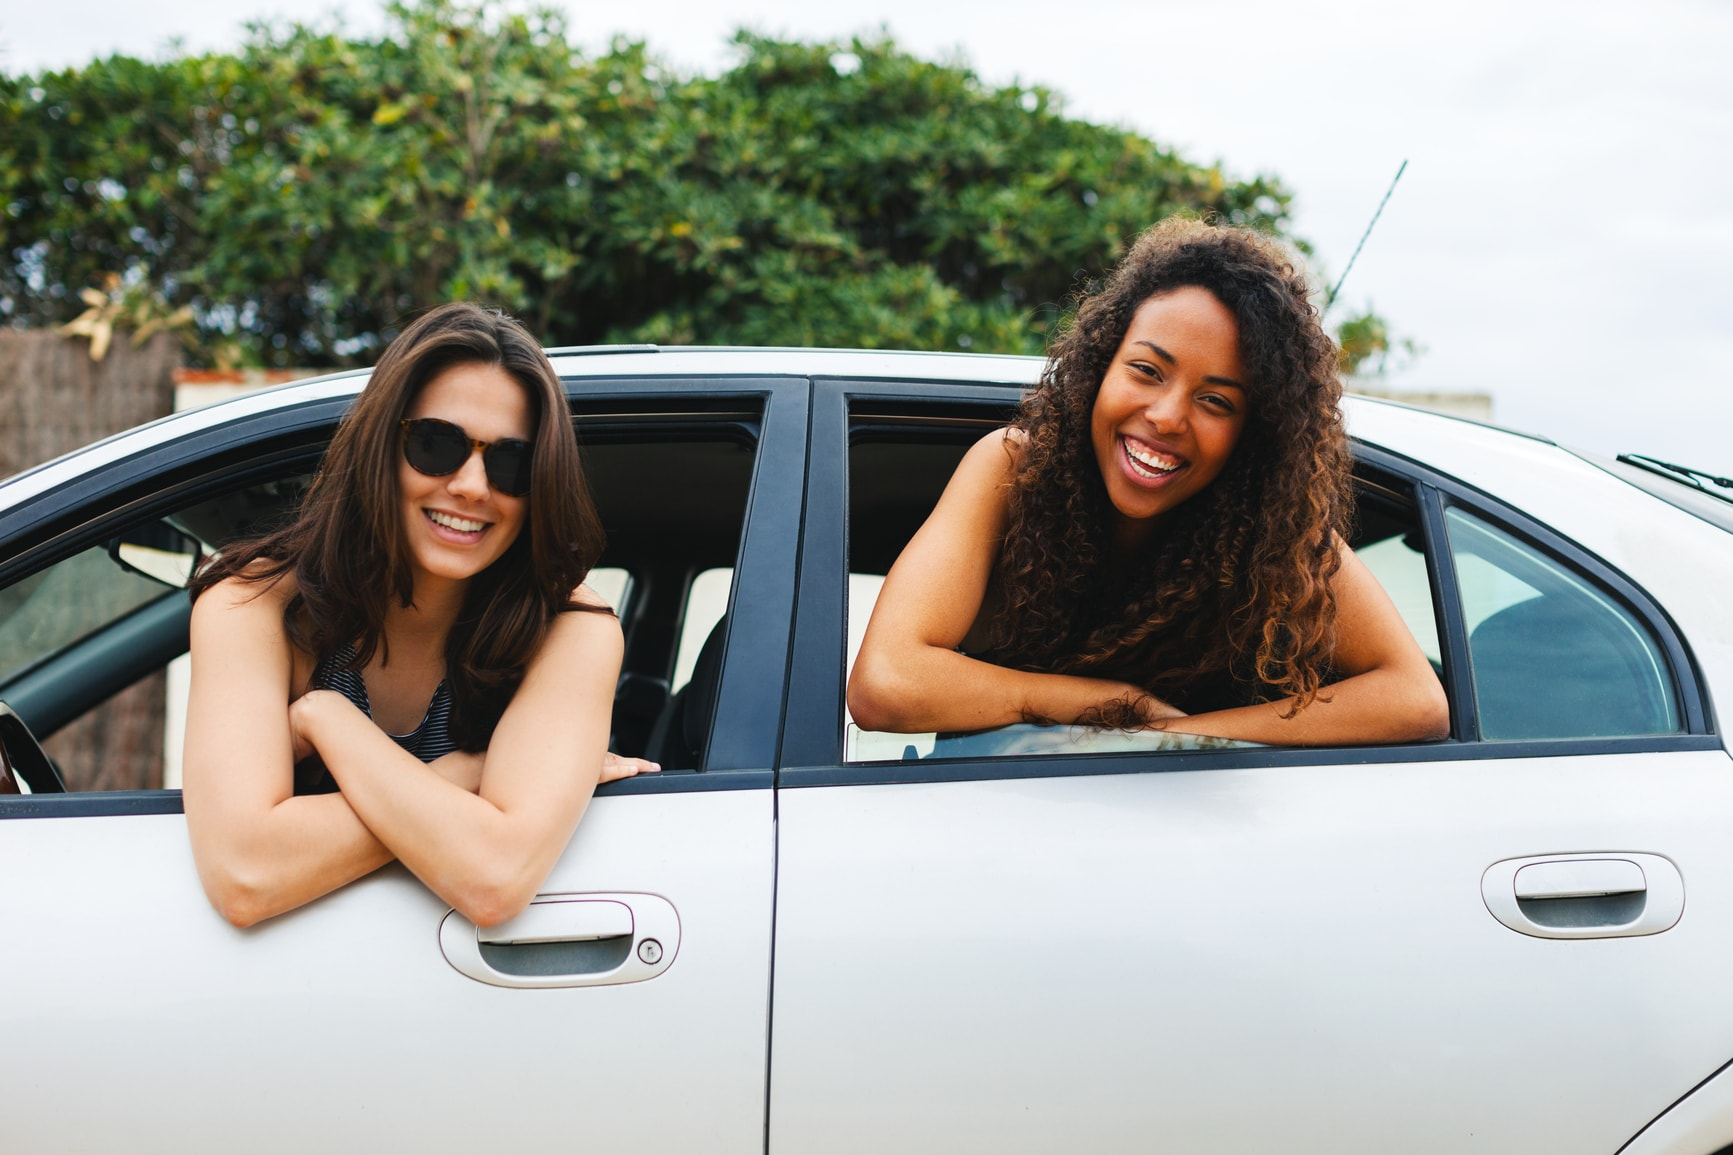 Two girls smiling outside of car window